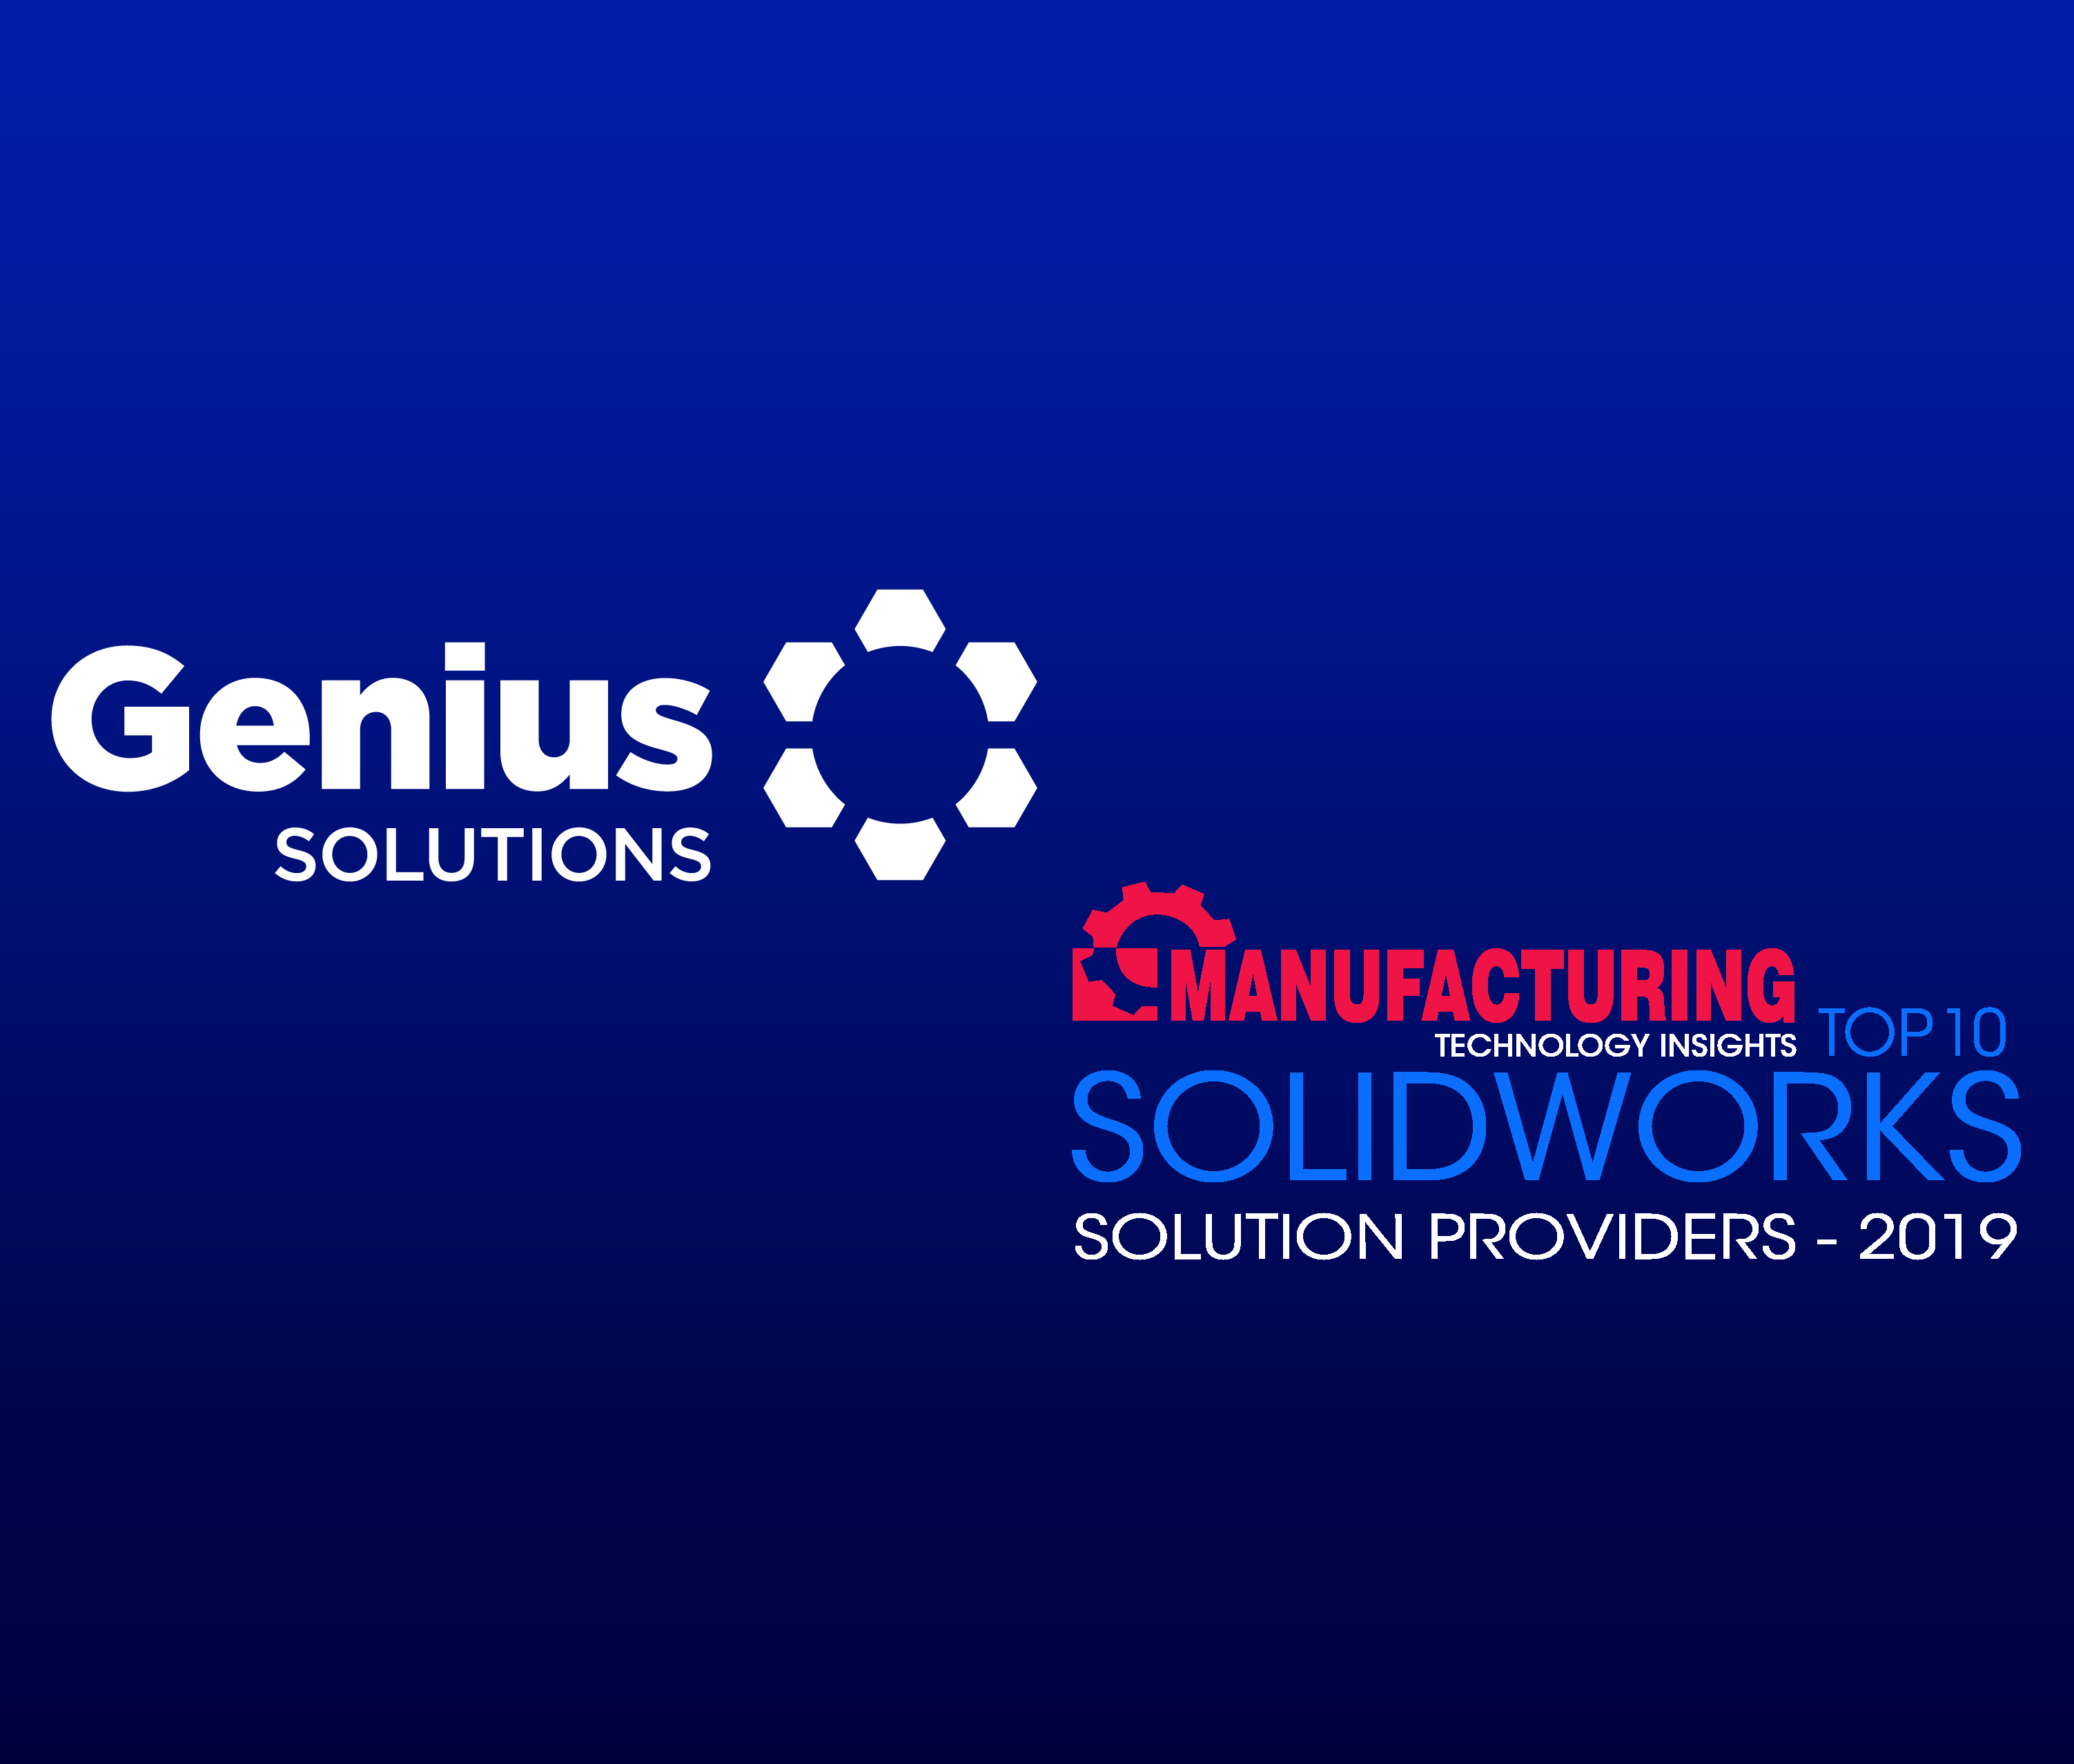 Manufacturing Technology Insights names Genius ERP a Top 10 SolidWorks Solution Provider for 2019